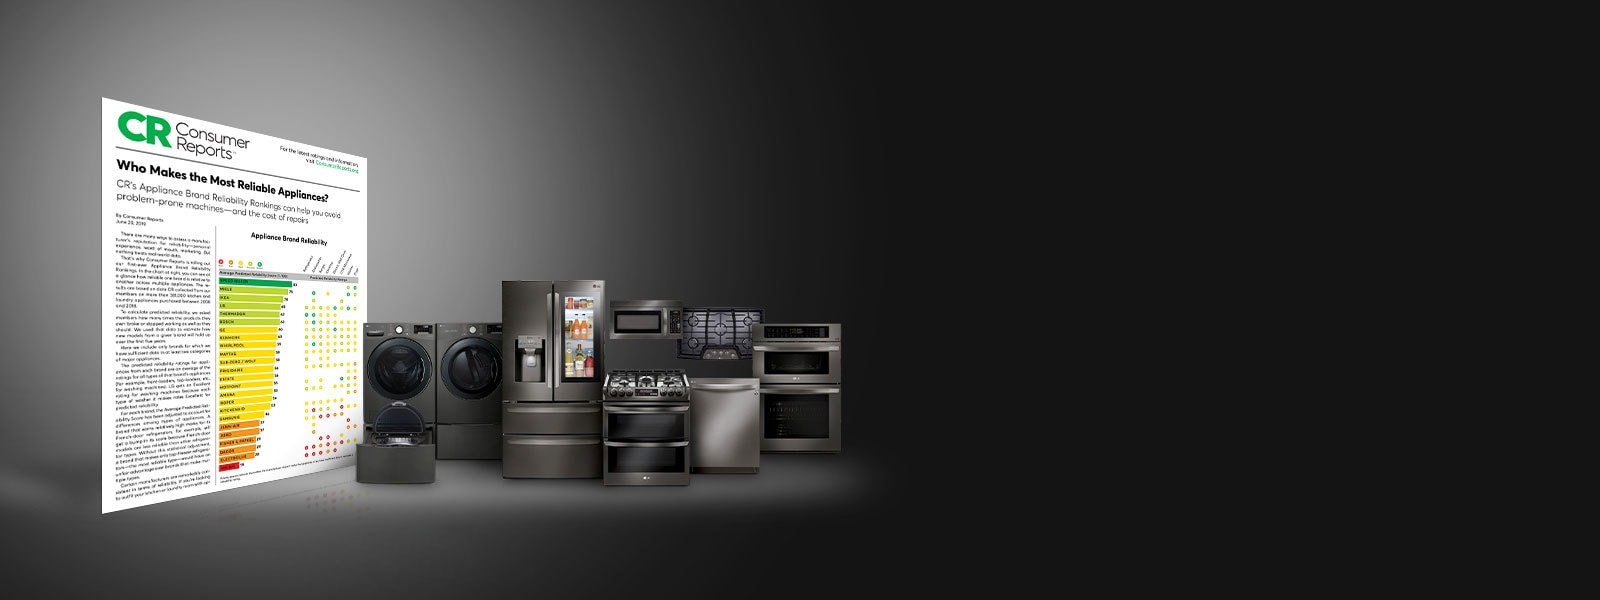 Appliances Made to Last1